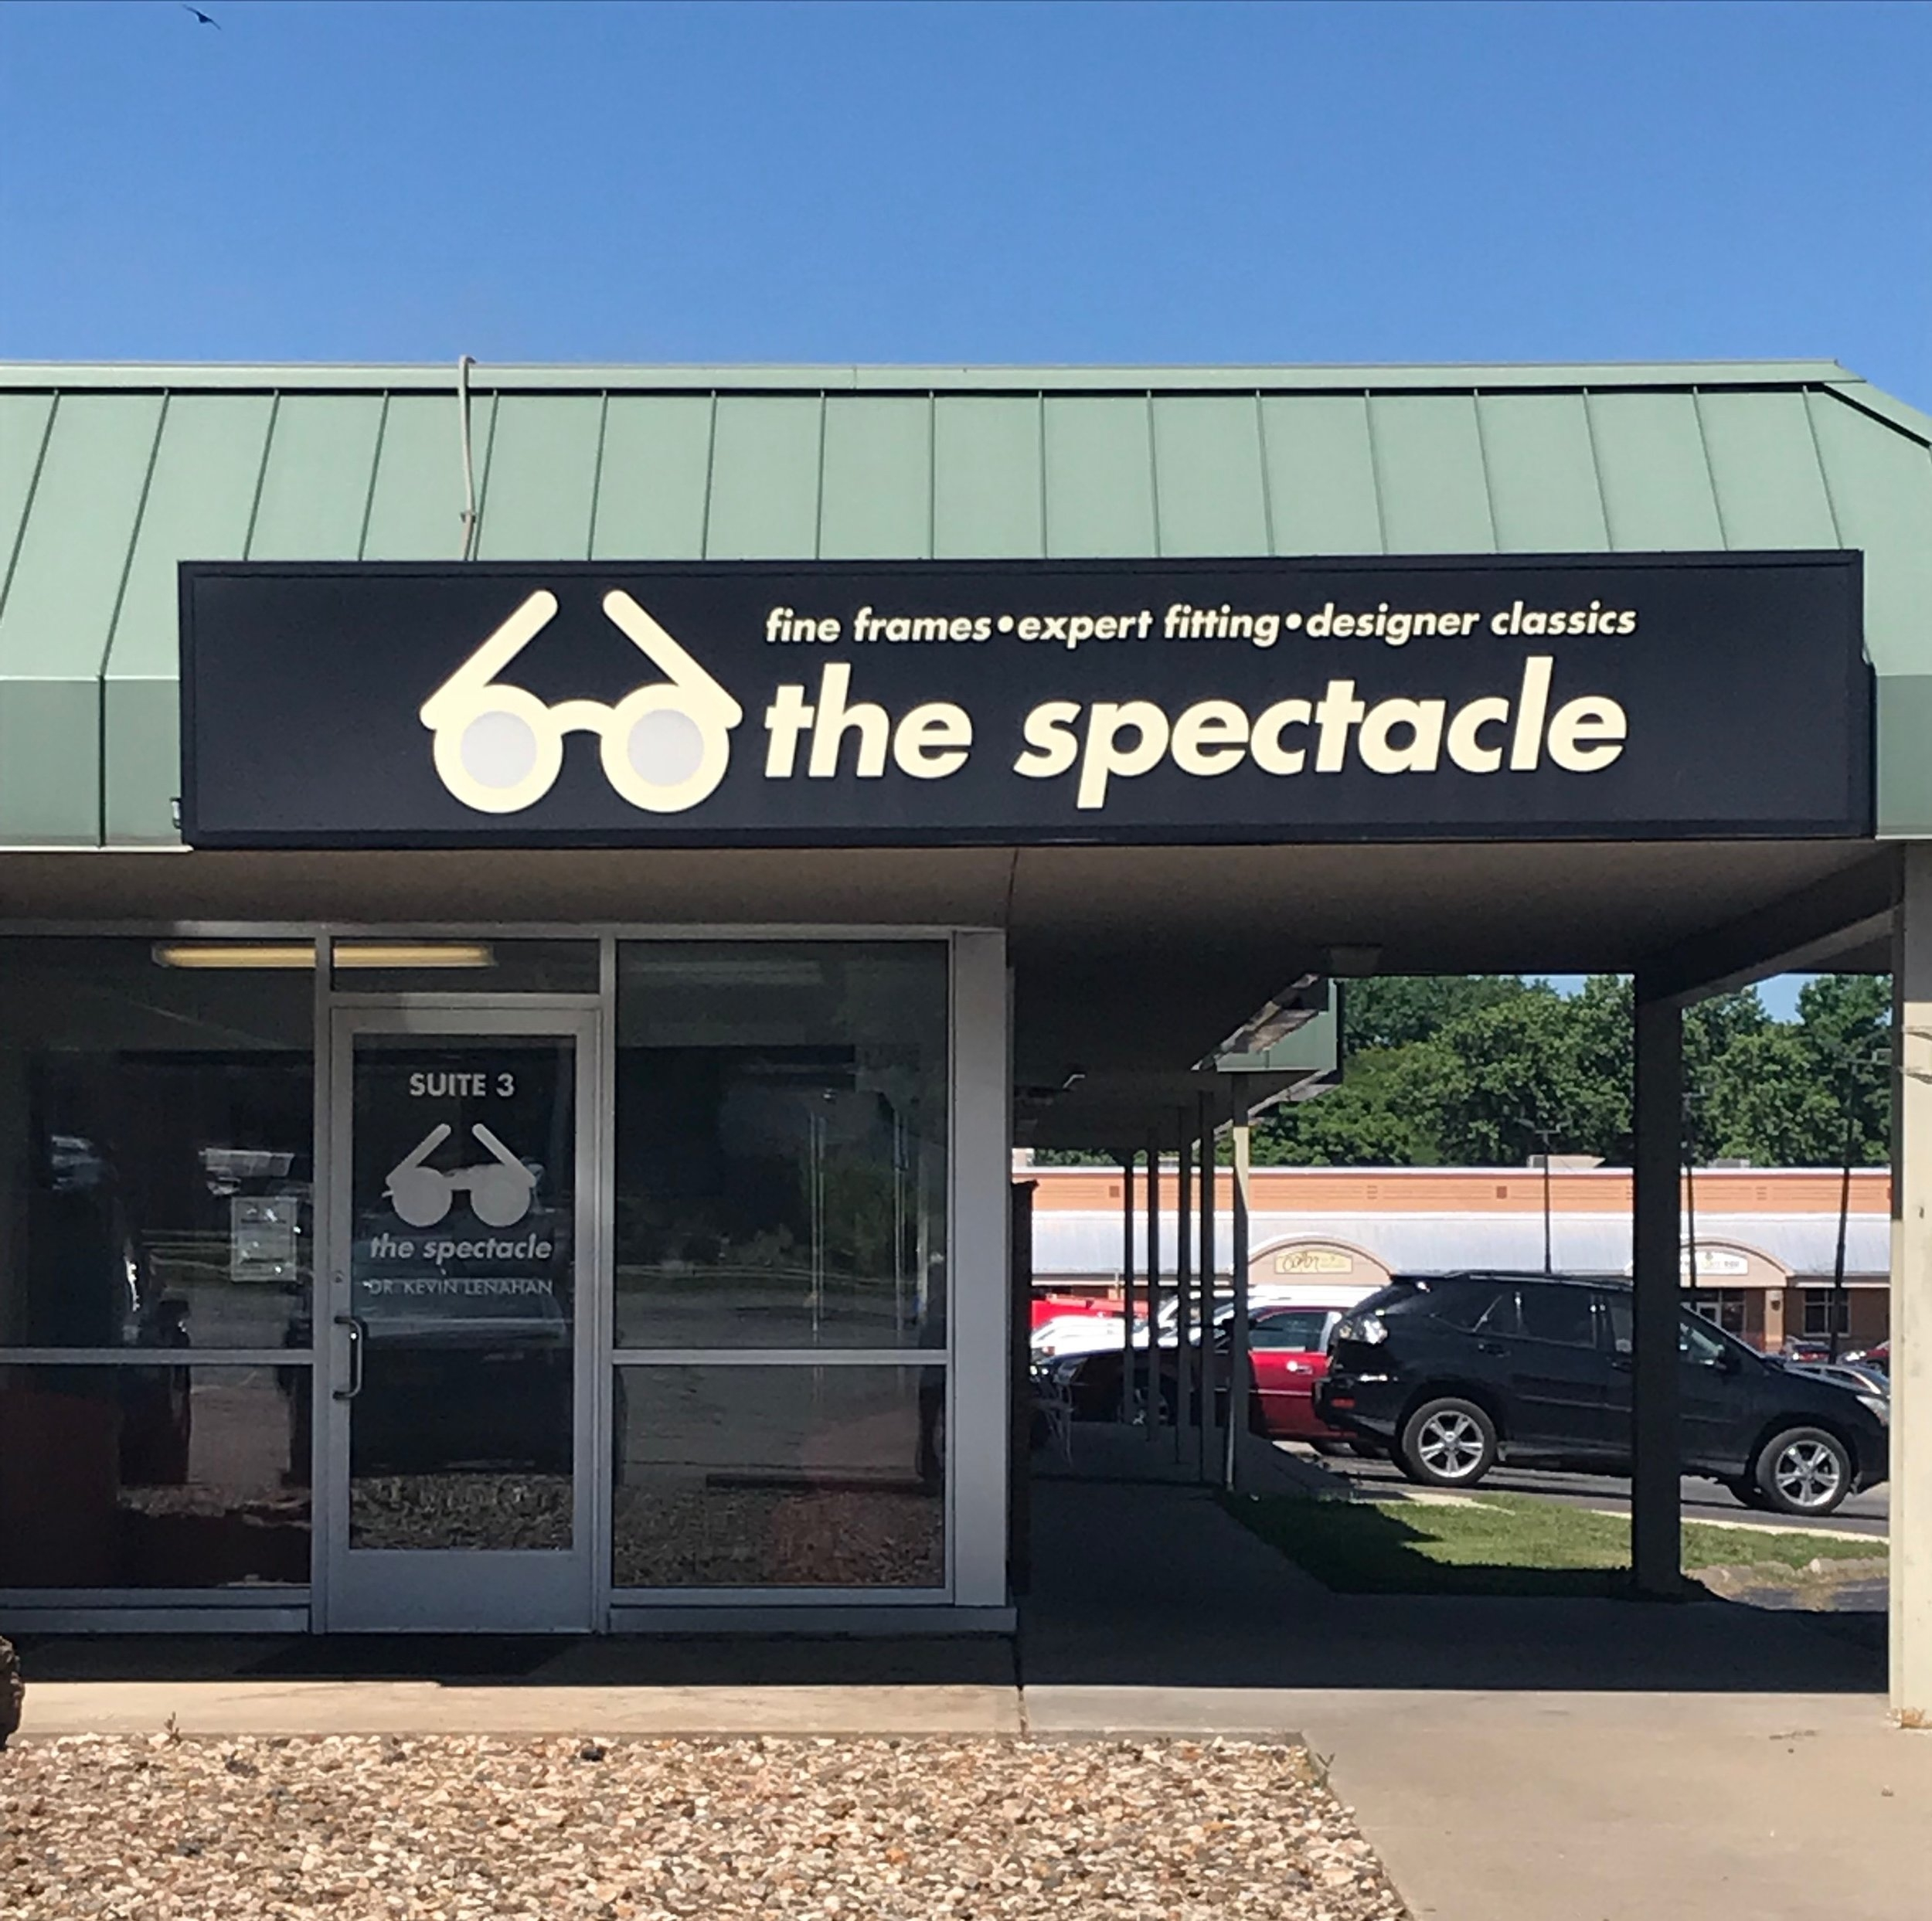 Lawrence - On 8/27/19, this office will become The EyeDoctors Optometrists. Click here for details.935 Iowa Street #3, Lawrence, Kansas, 66044Phone: 785-838-3200Business Hours:Monday, 9 a.m.-6 p.m.Tuesday, 10 a.m.-6 p.m.Wednesday, 9 a.m.-6 p.mThursday, 10 a.m.-6 p.m.Friday, 9 a.m.-5 p.m.Saturday, 9 a.m.-1 p.m.